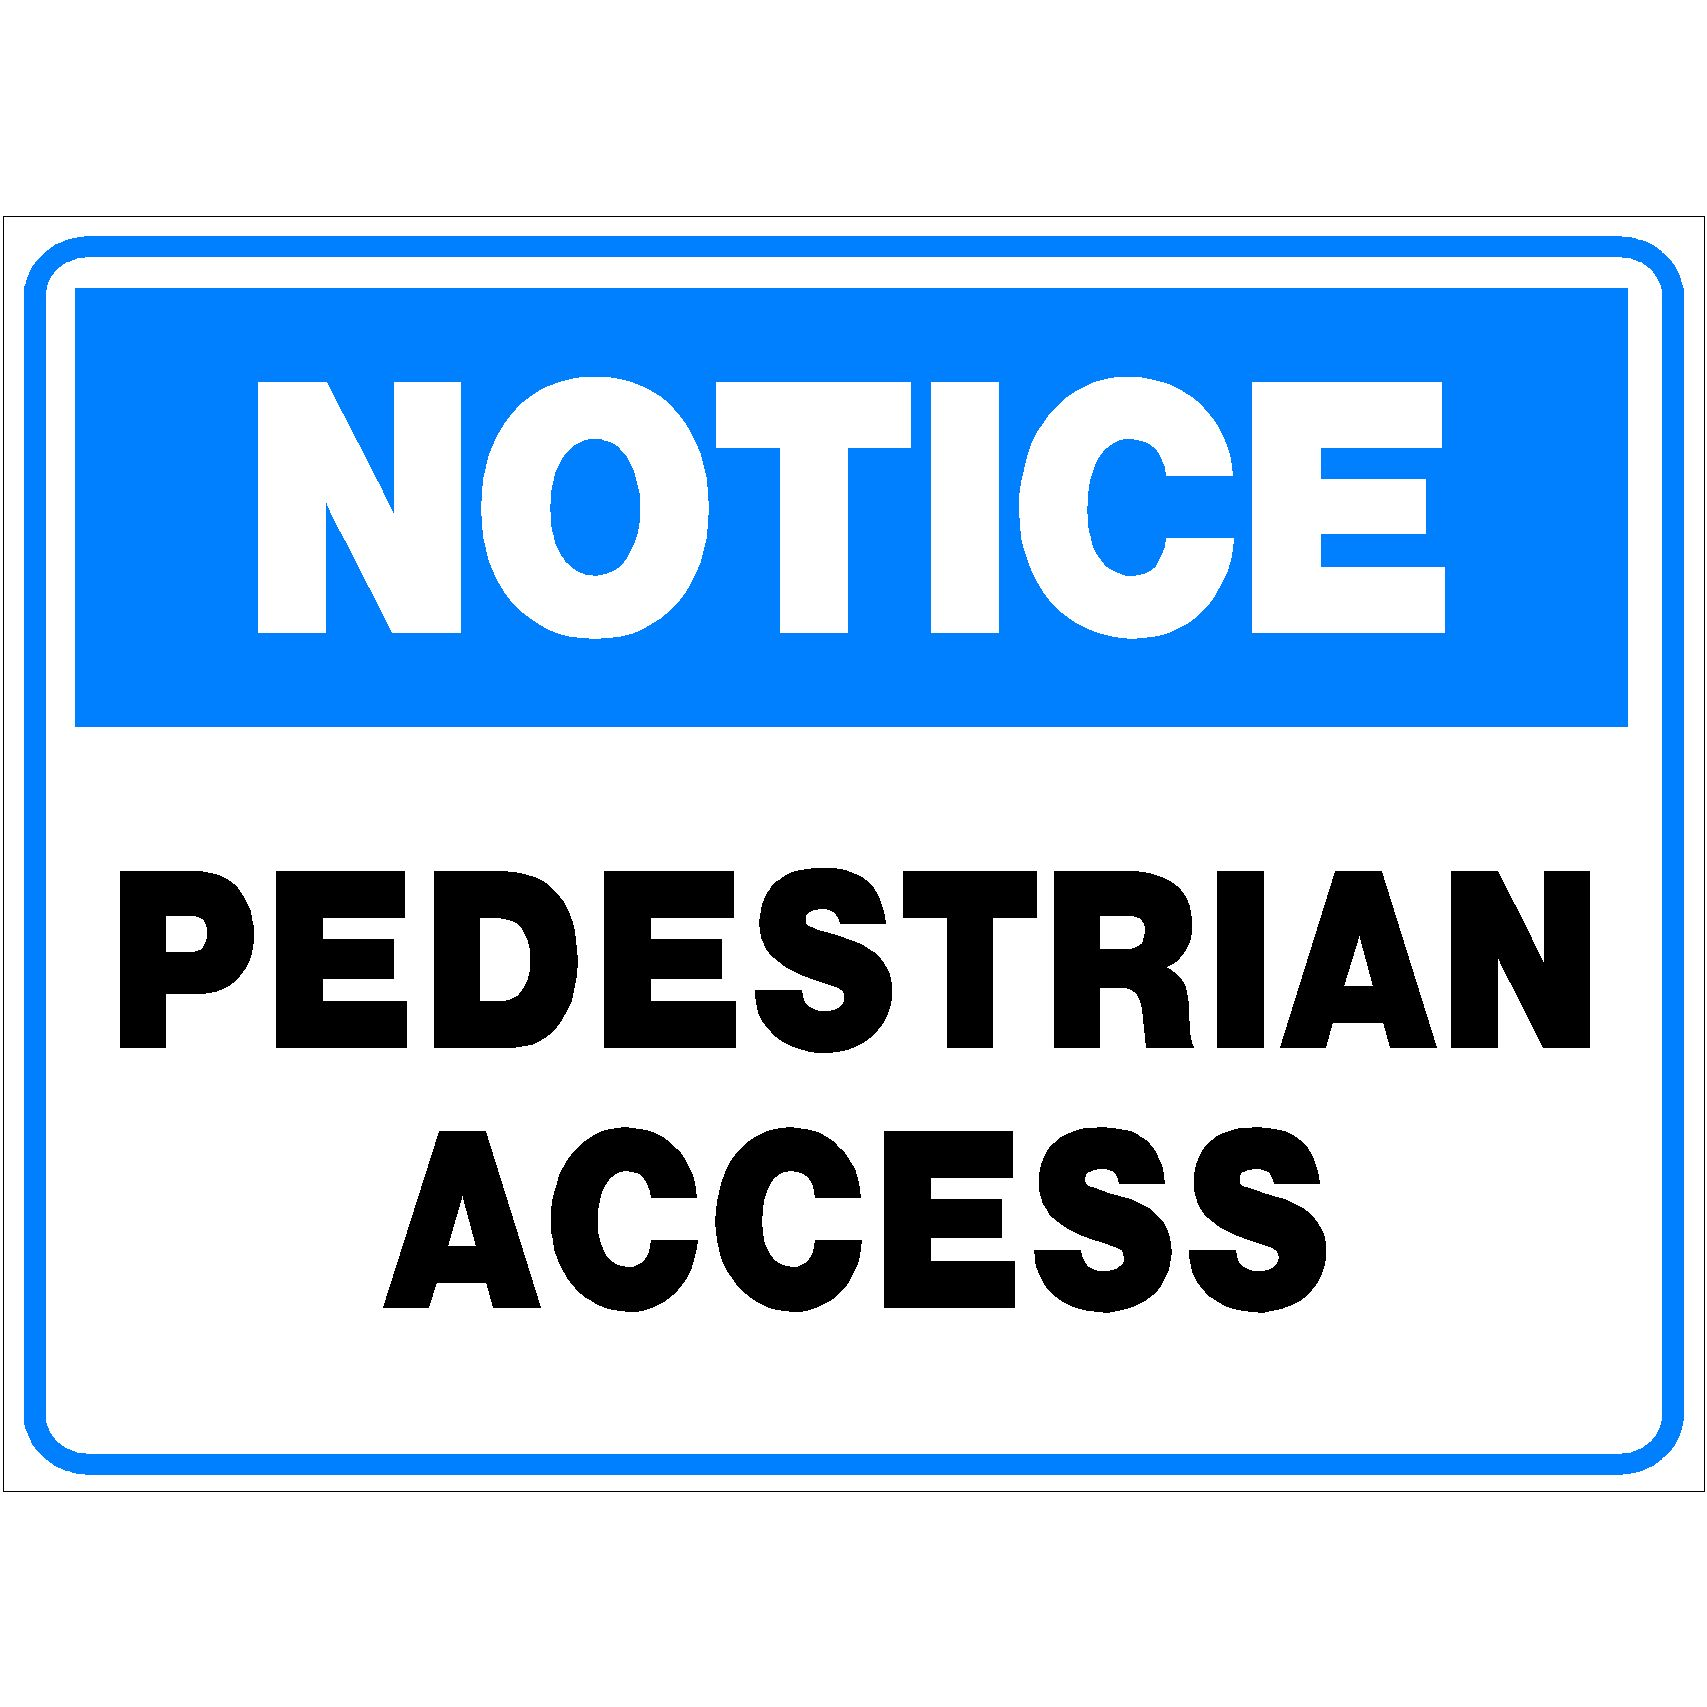 Notice Pedestrian Access